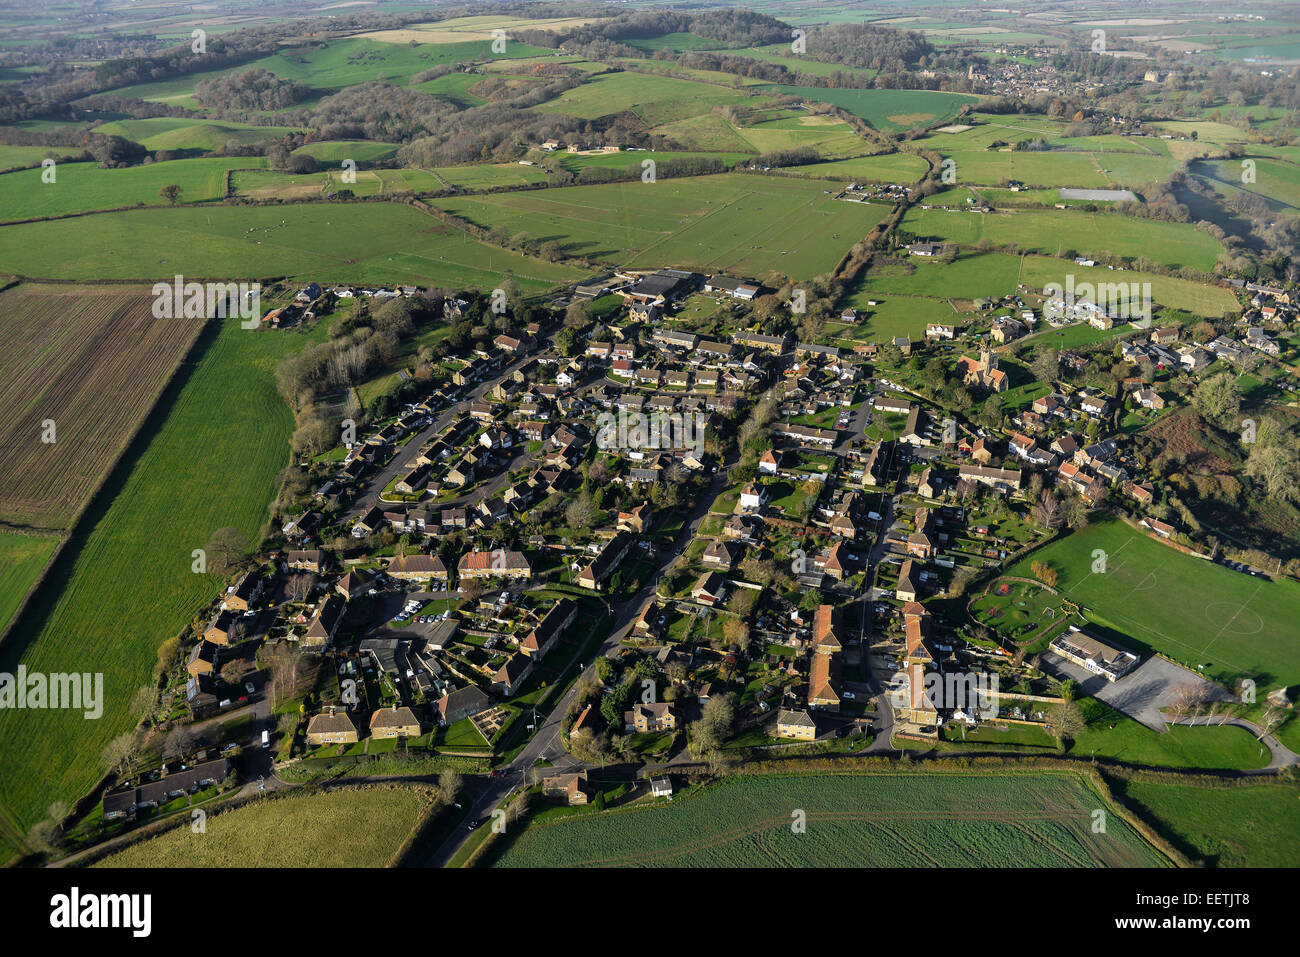 An aerial view of the South Somerset village of Odcombe and surrounding farmland - Stock Image